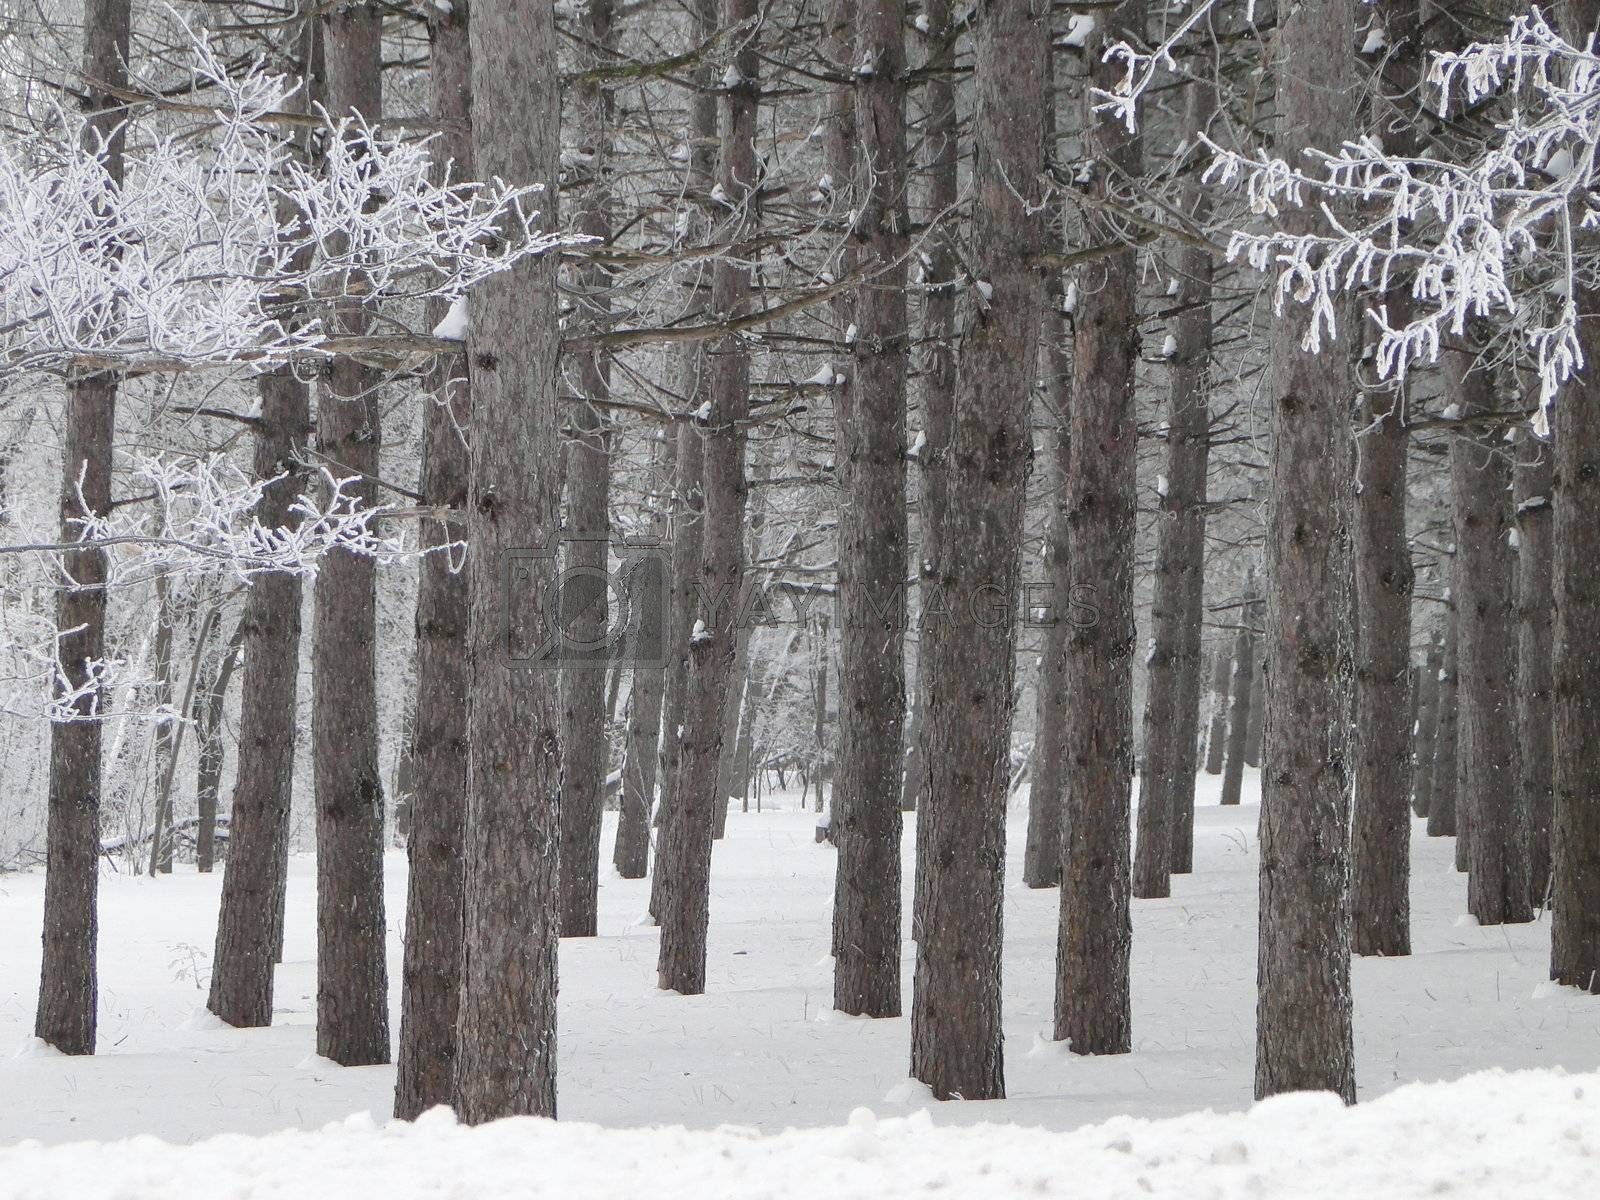 Royalty free image of Winter Pine Forest by ewilliamsdesign